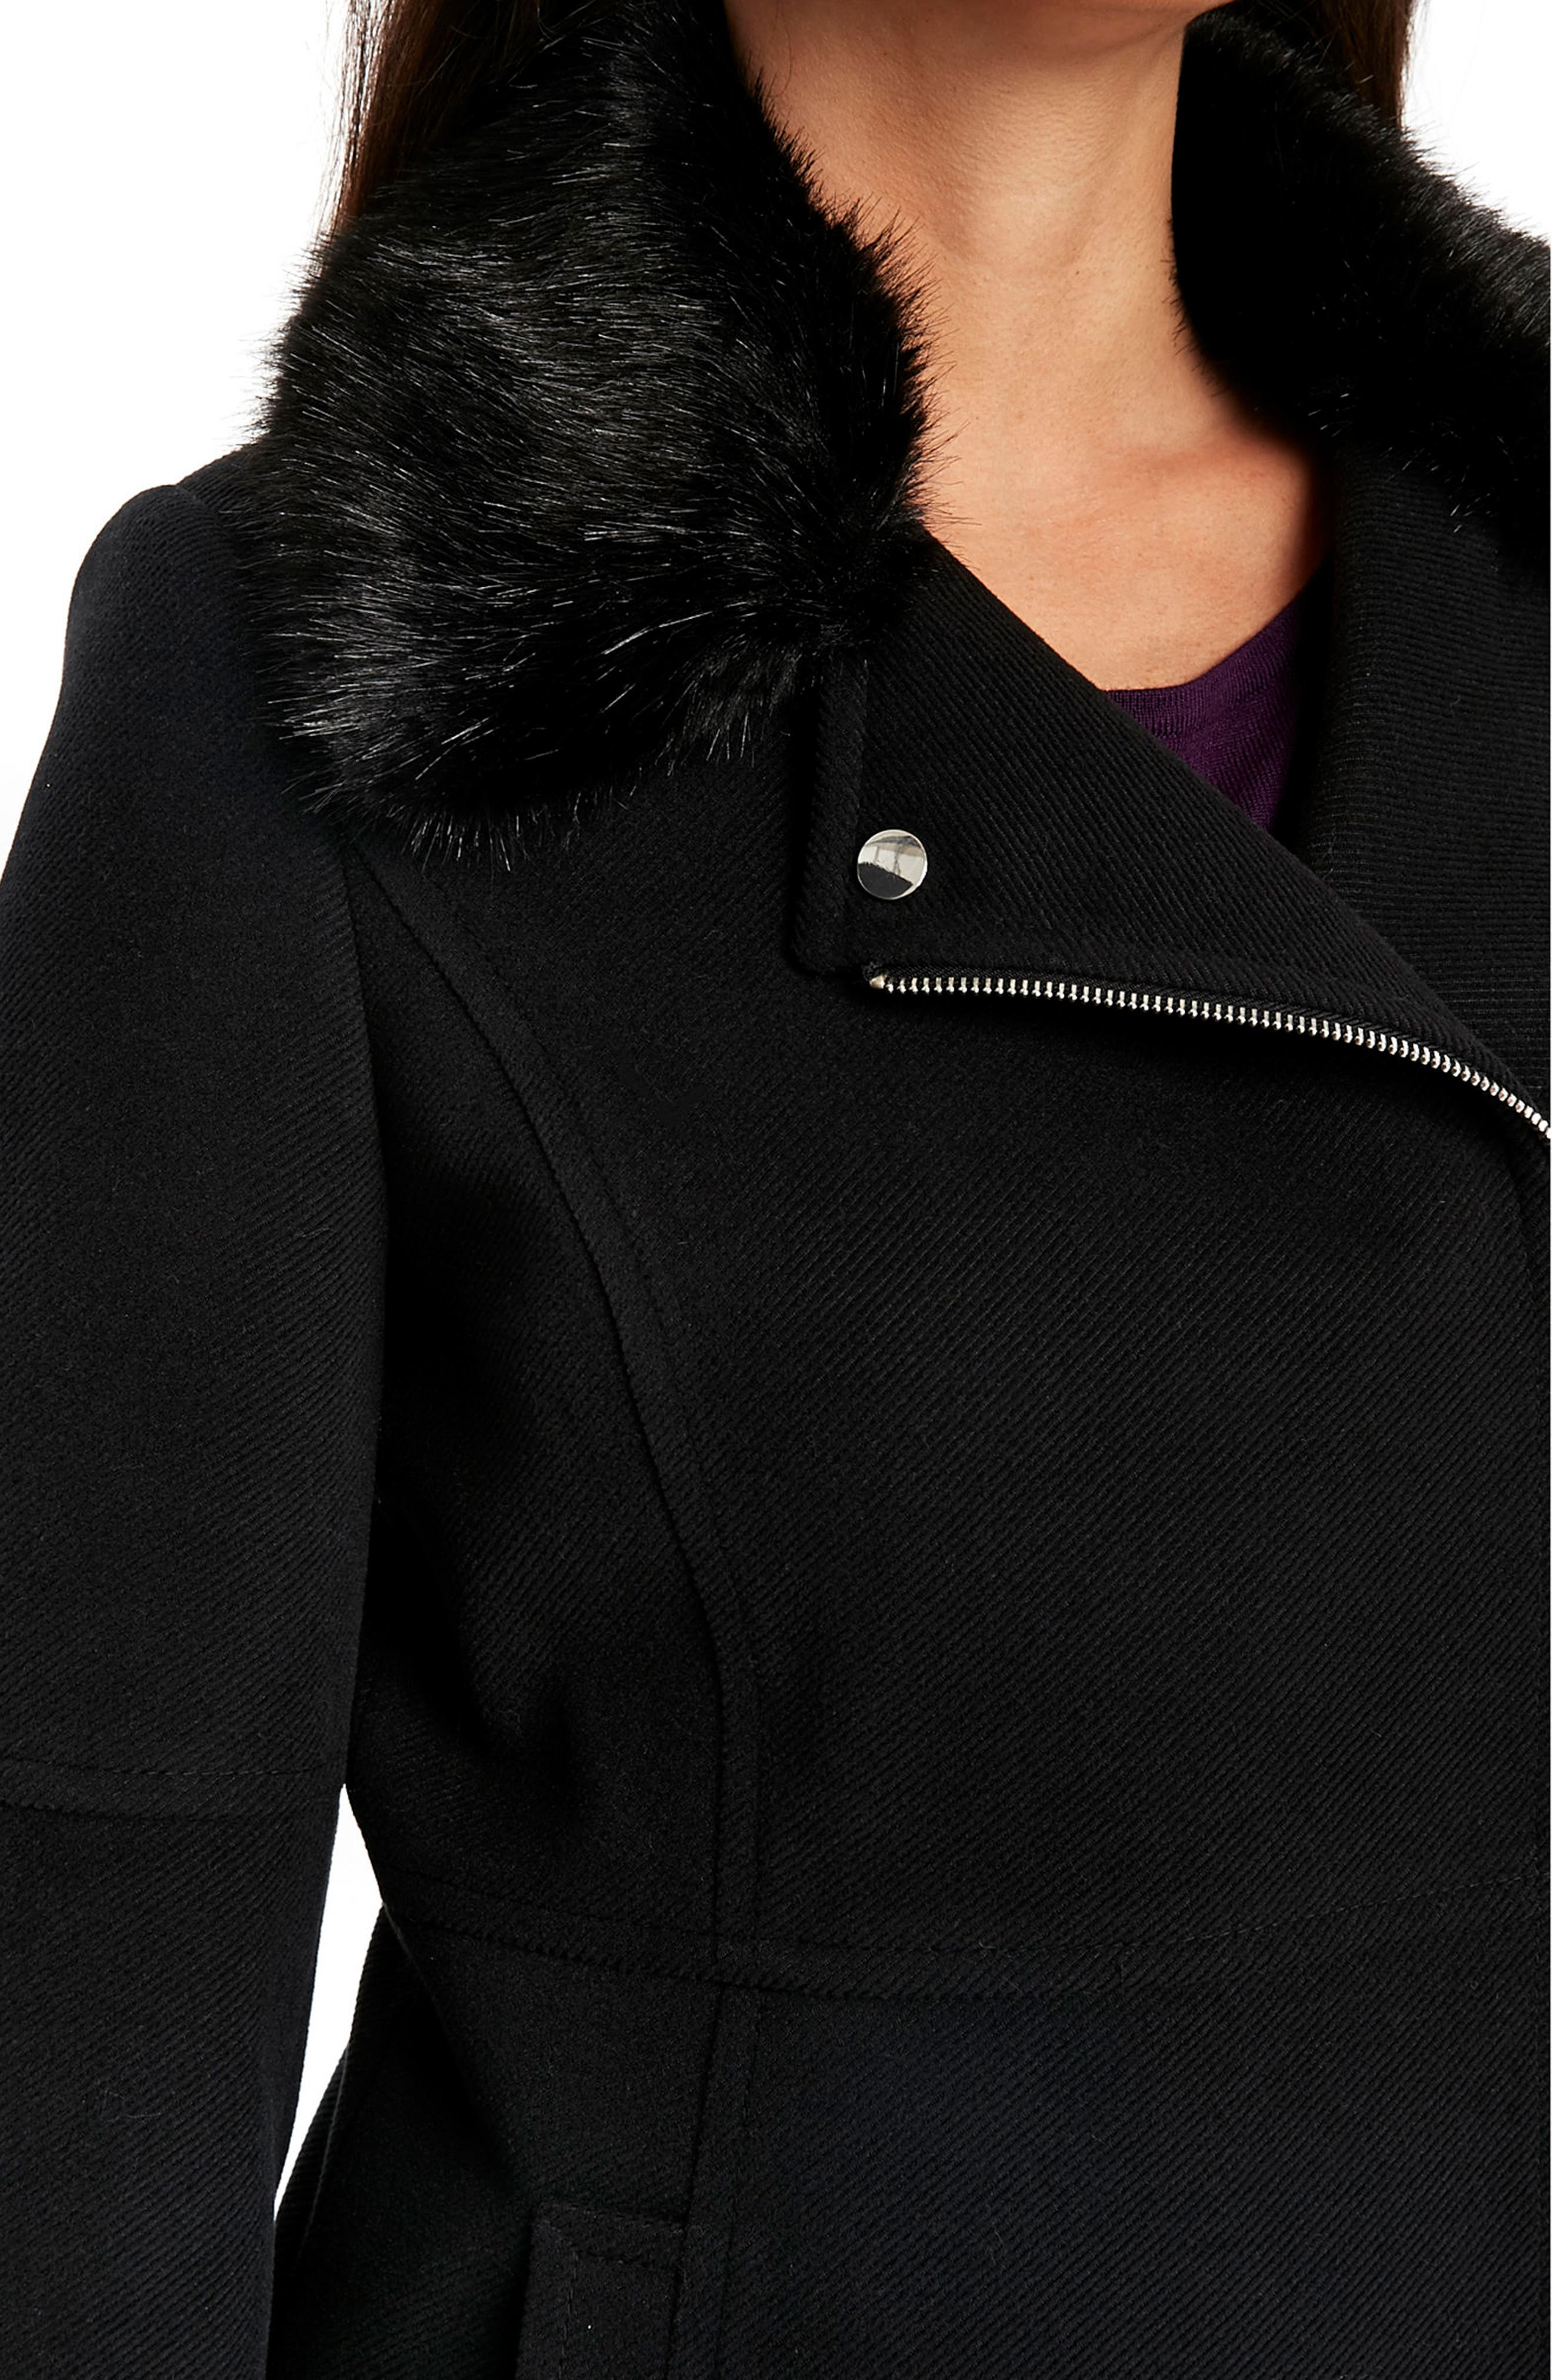 Twill Biker Jacket with Faux Fur Collar,                             Alternate thumbnail 3, color,